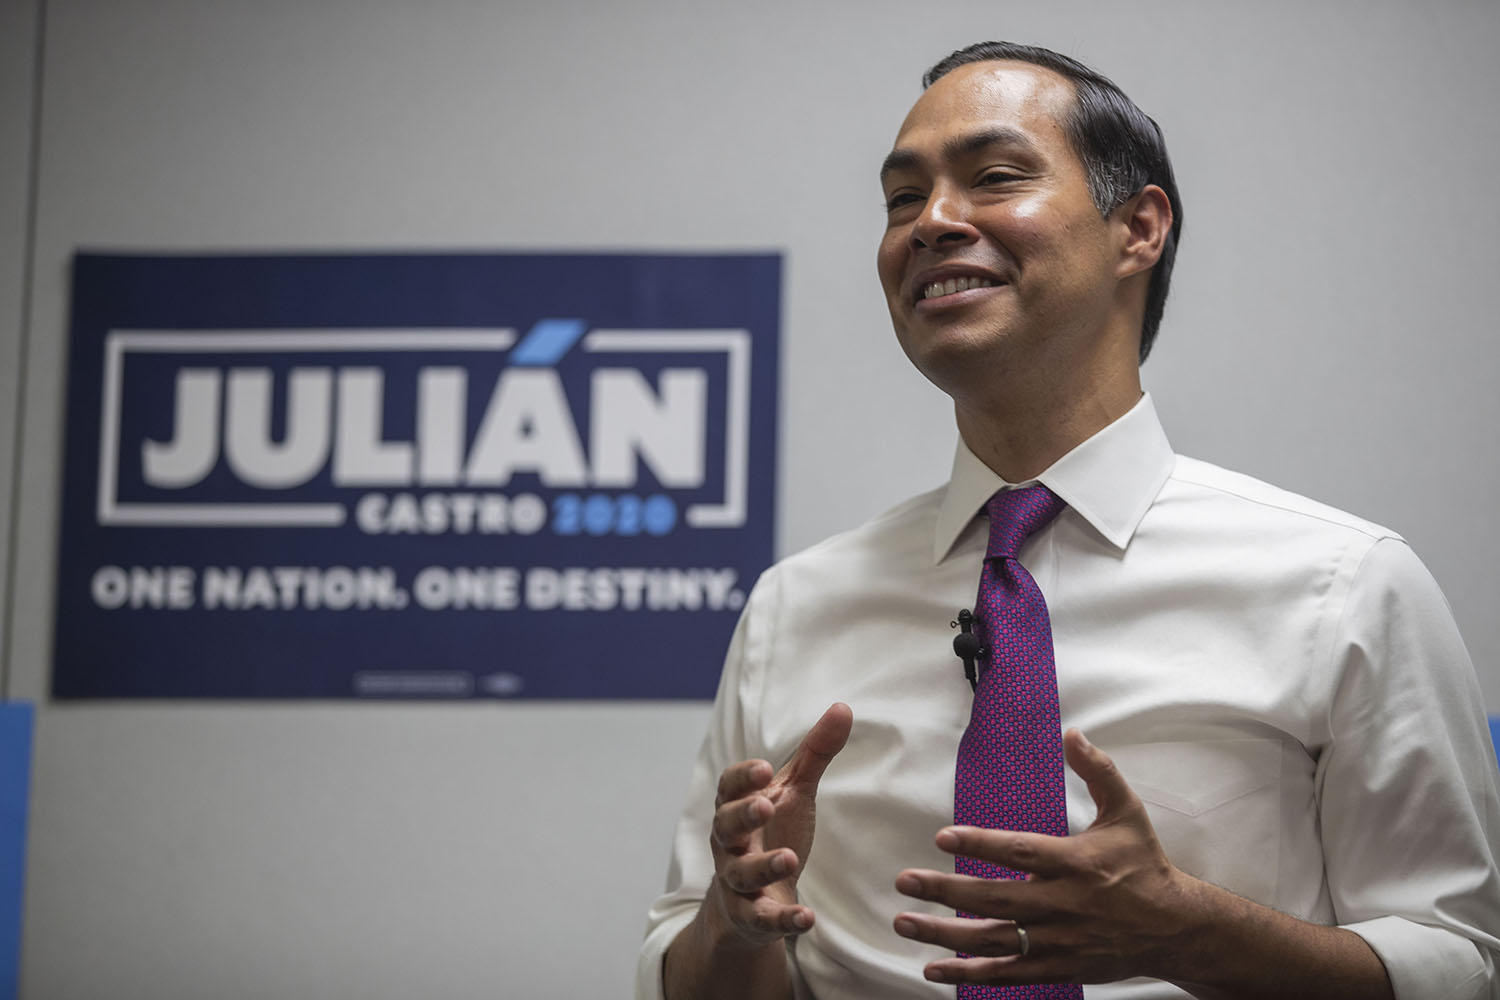 Former U.S. Secretary of Housing and Urban Development and 2020 Democratic candidate Julian Castro speaks on gun violence at a town hall organized by Moms Demand Action volunteers in North Liberty on Wednesday, August 14, 2019.